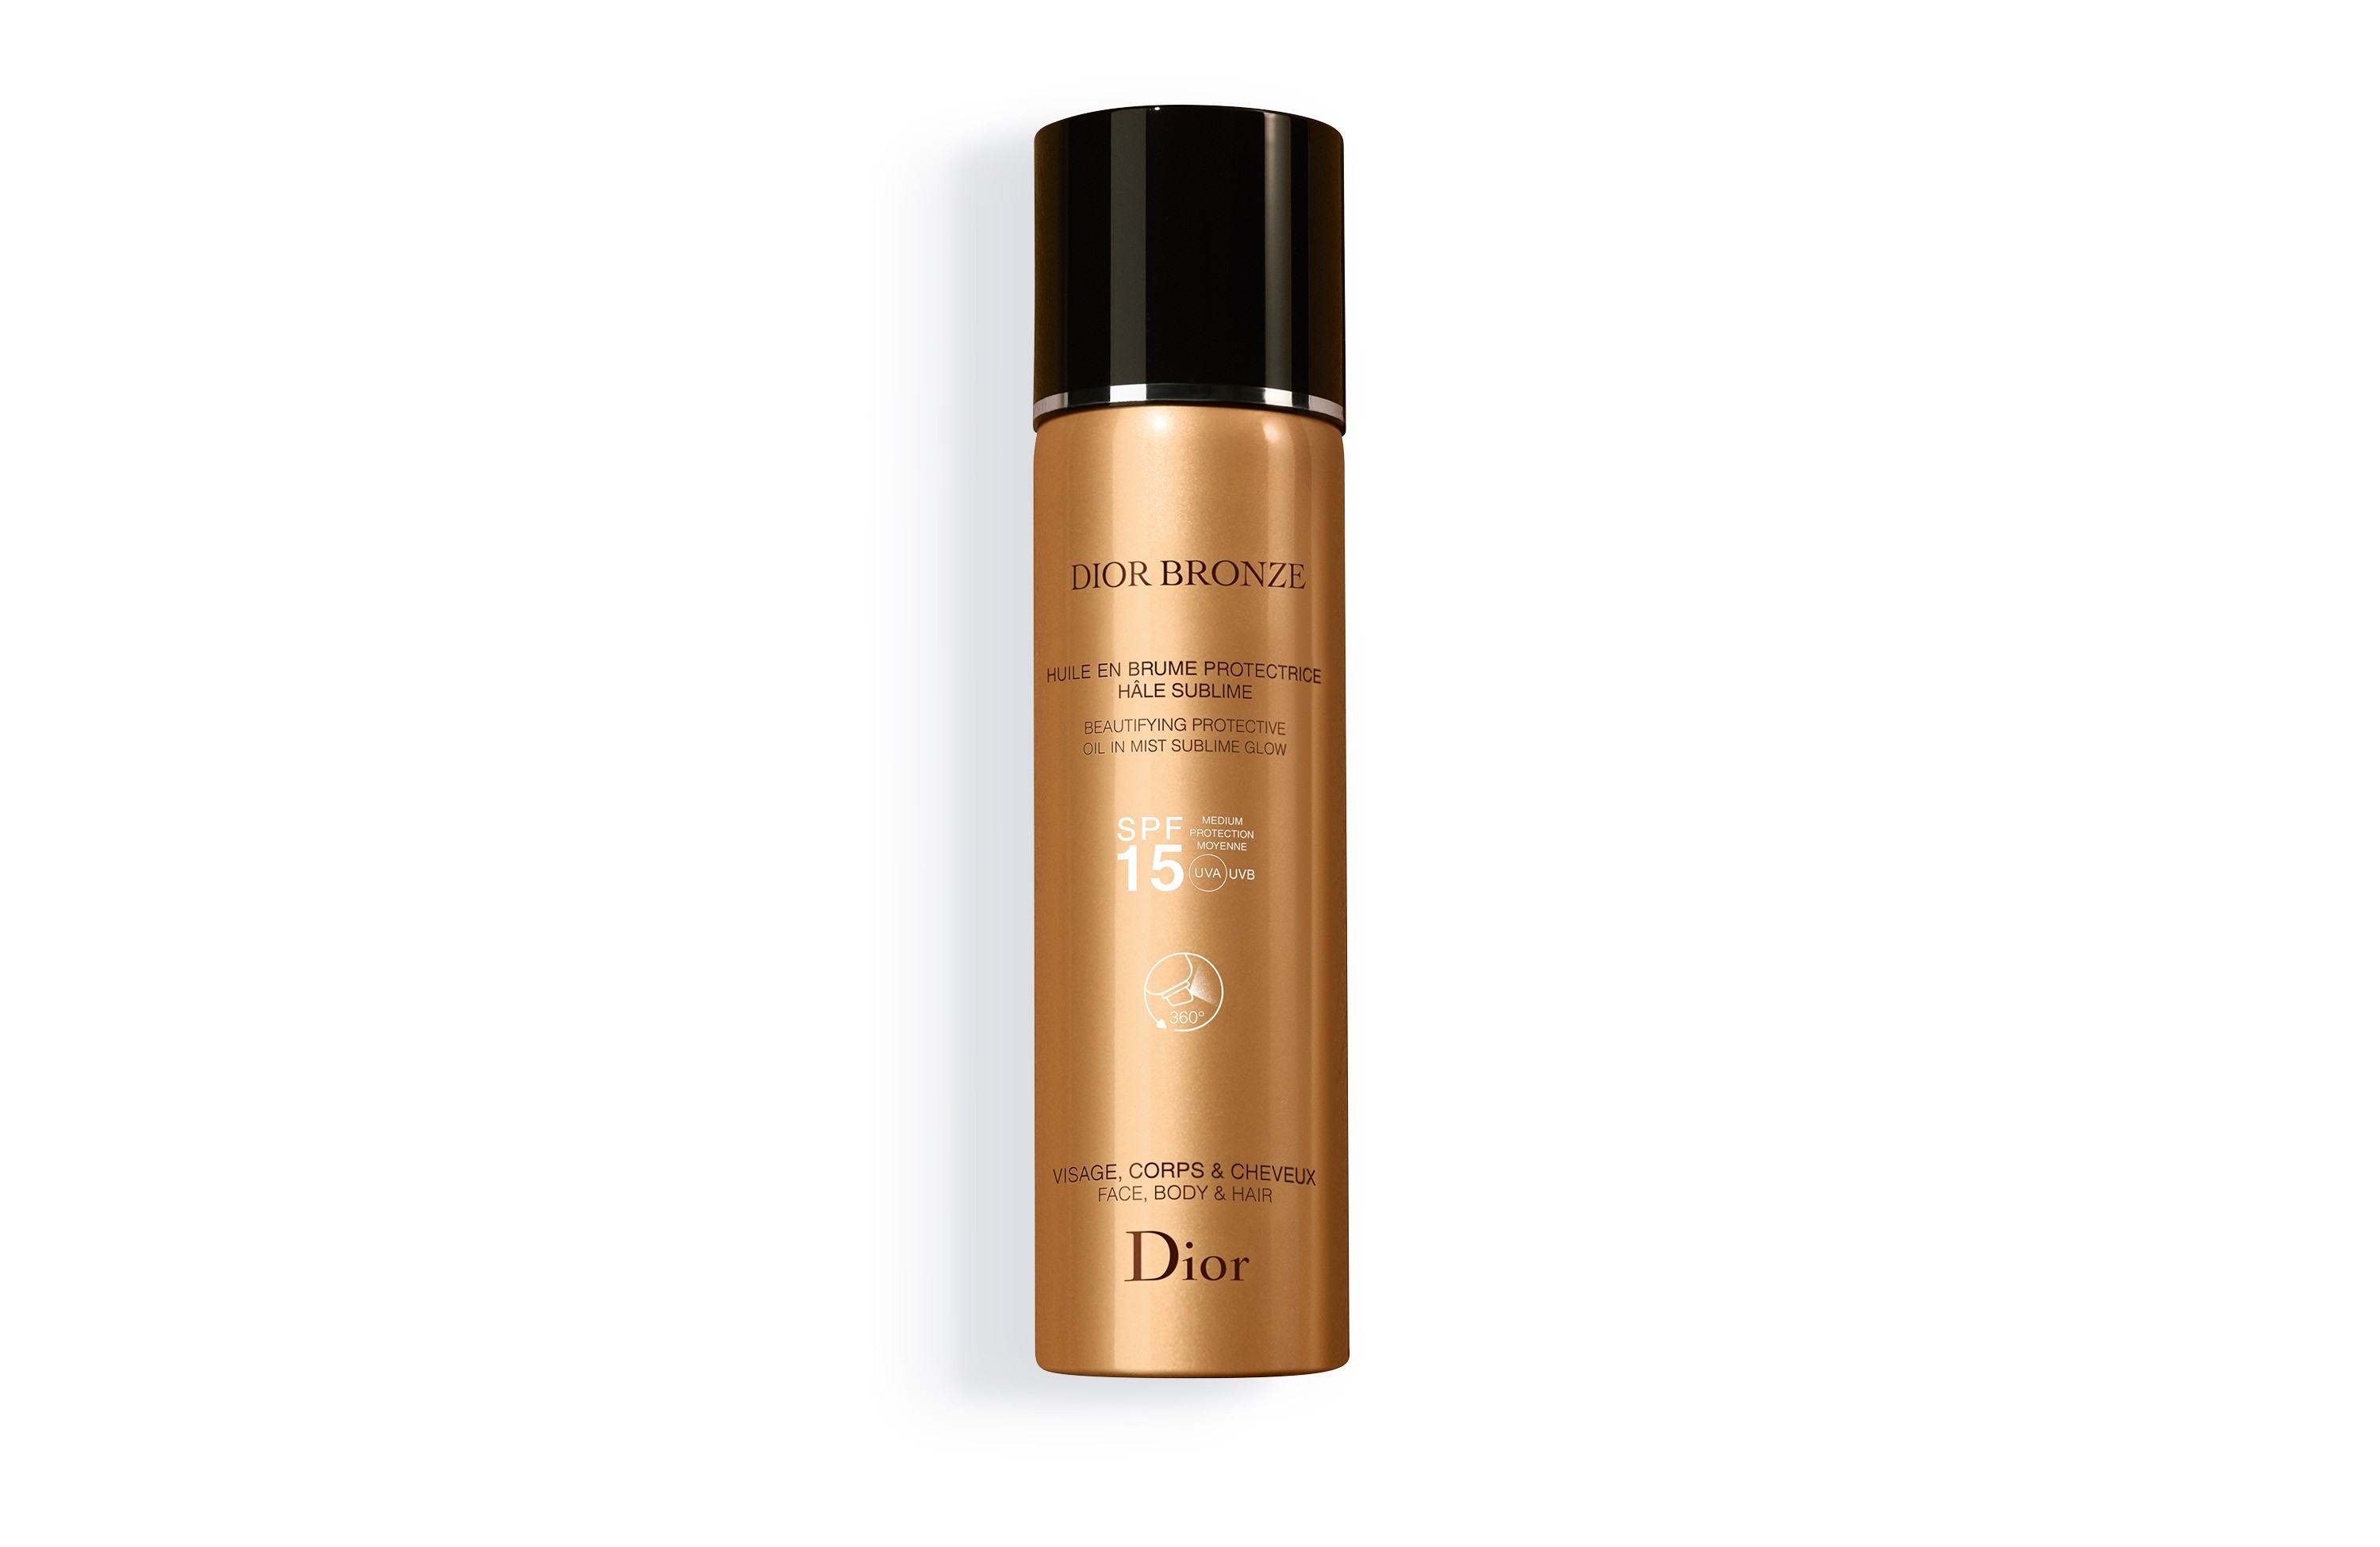 Dior Bronze Beautifying Protective Oil Sublime Glow SPF 15